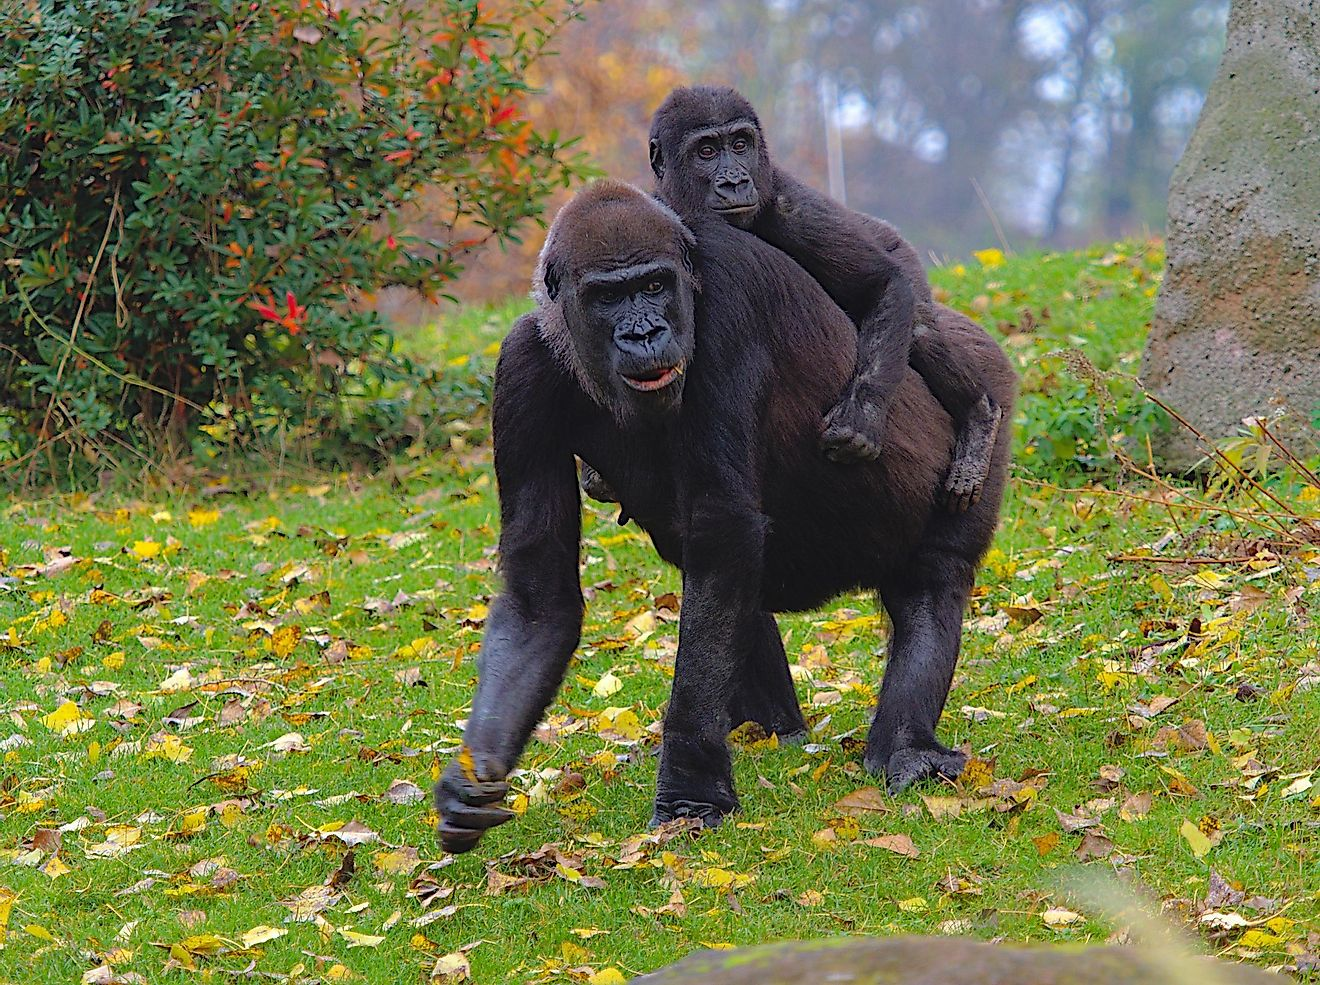 A gorilla walking with its offspring on the back.